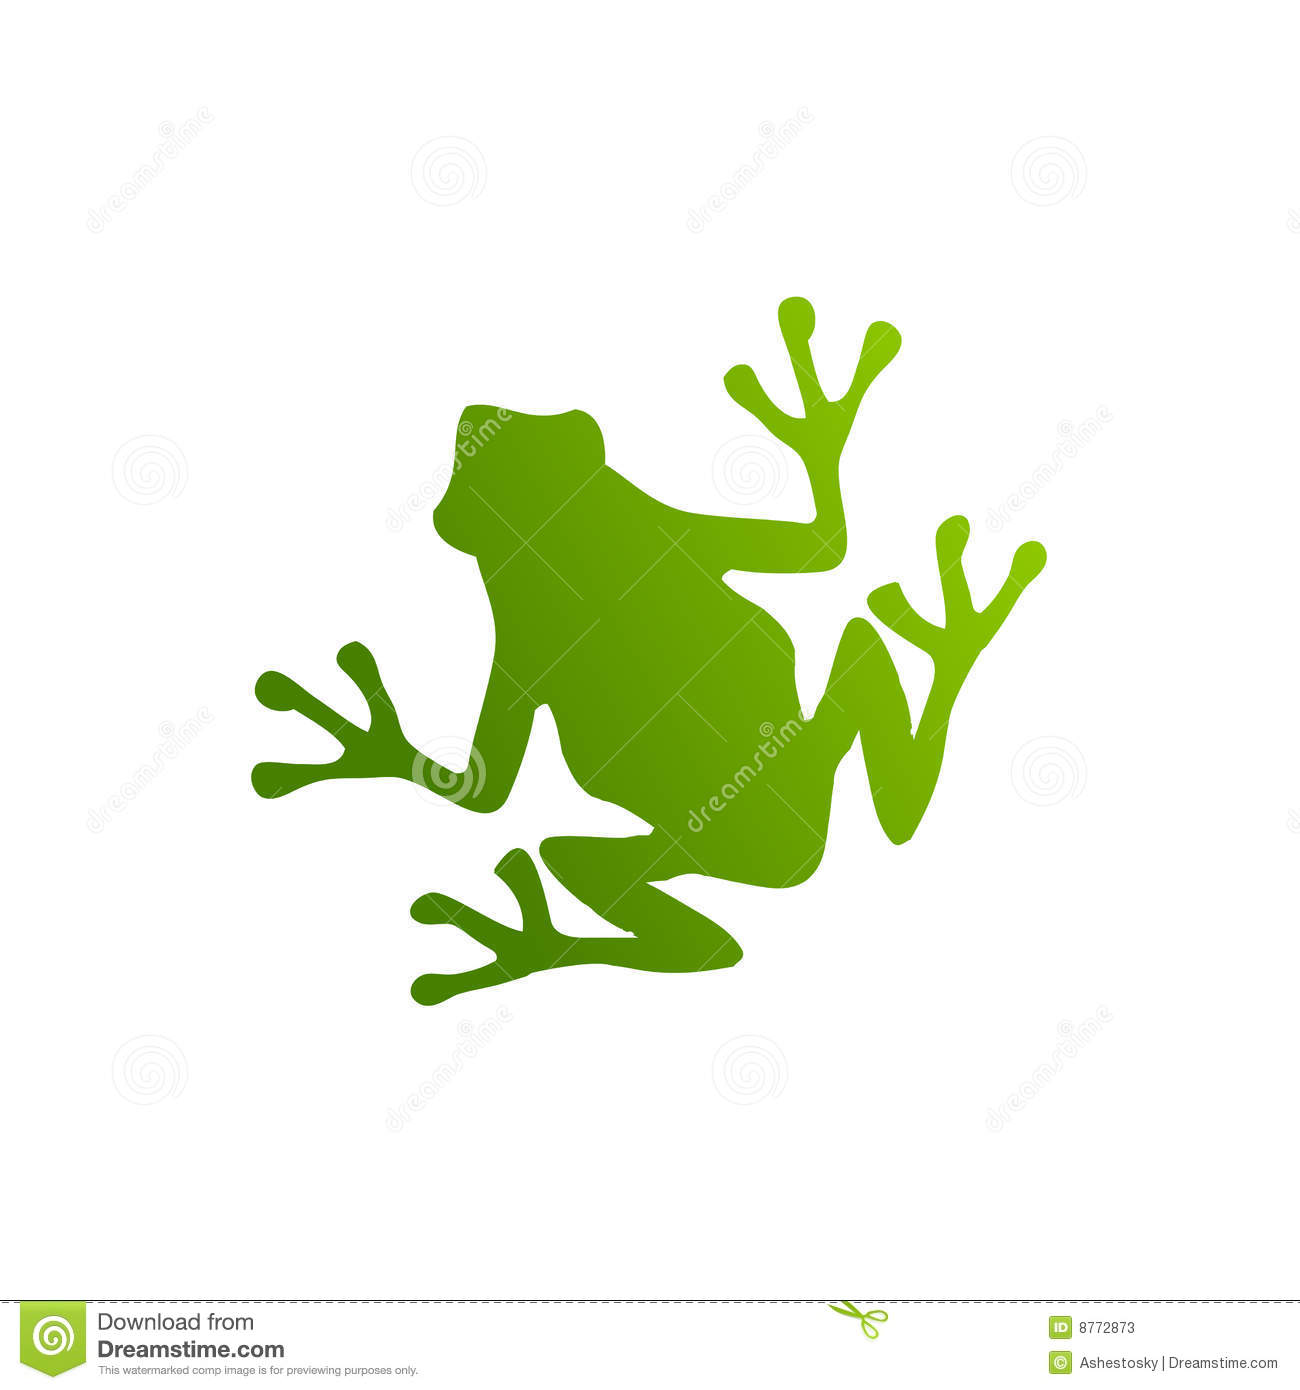 Green frog silhouette